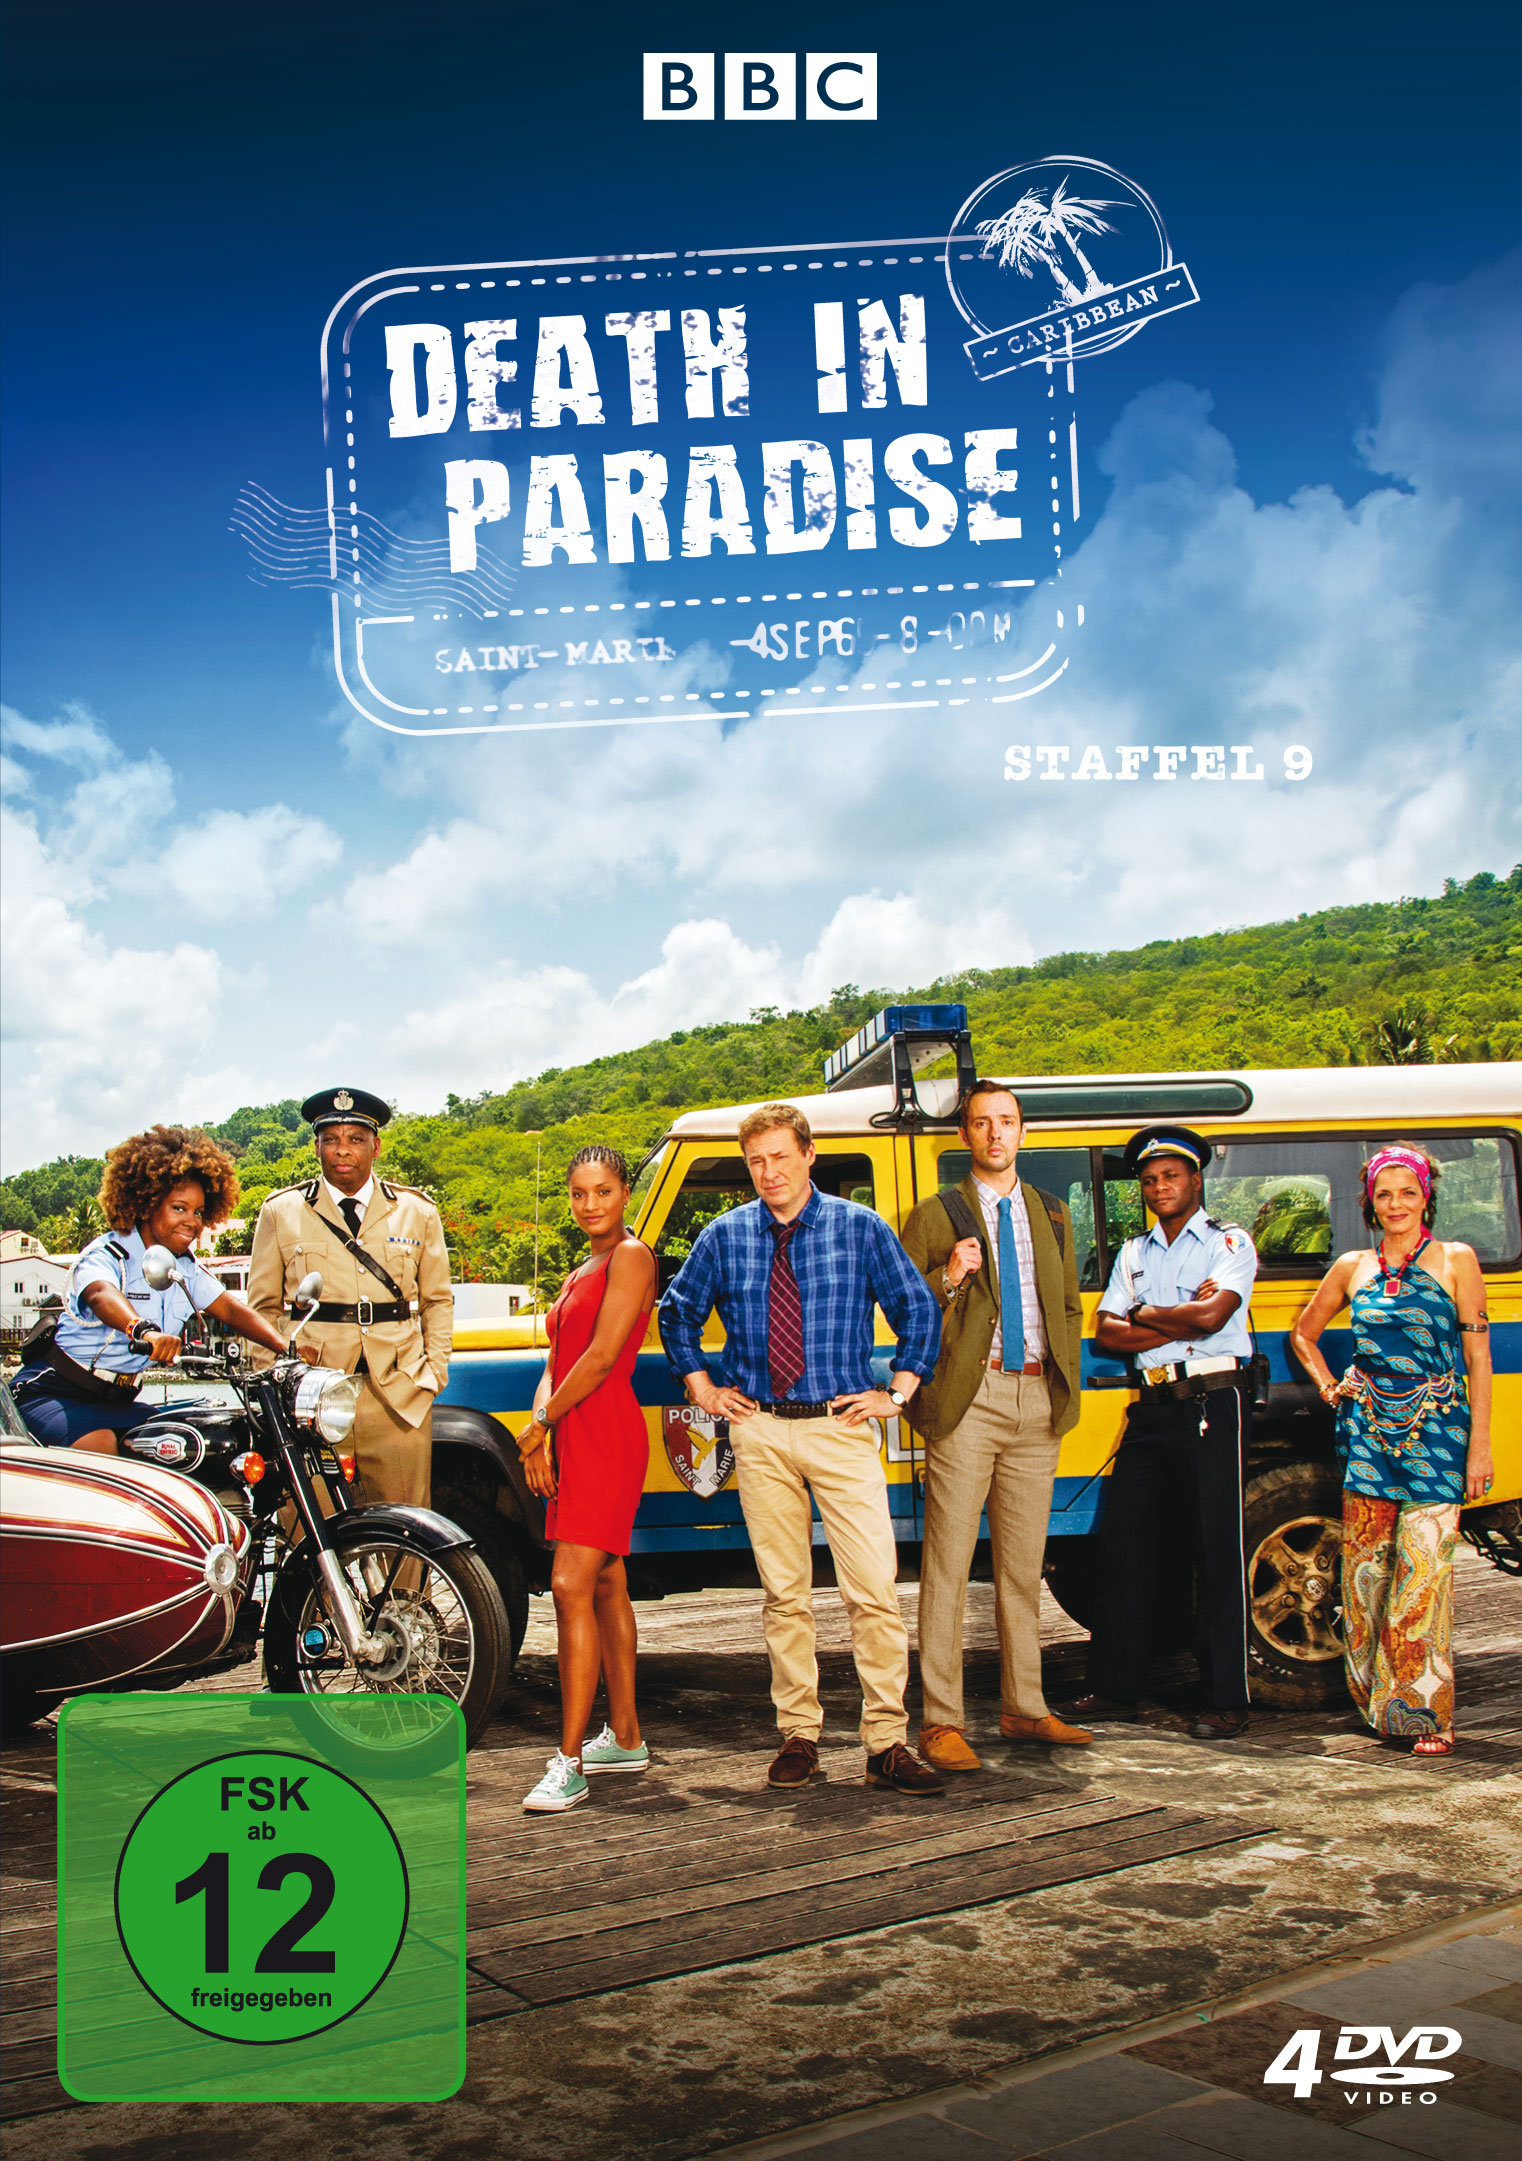 0215283ER2 DeathInParadise Staffel9 cover